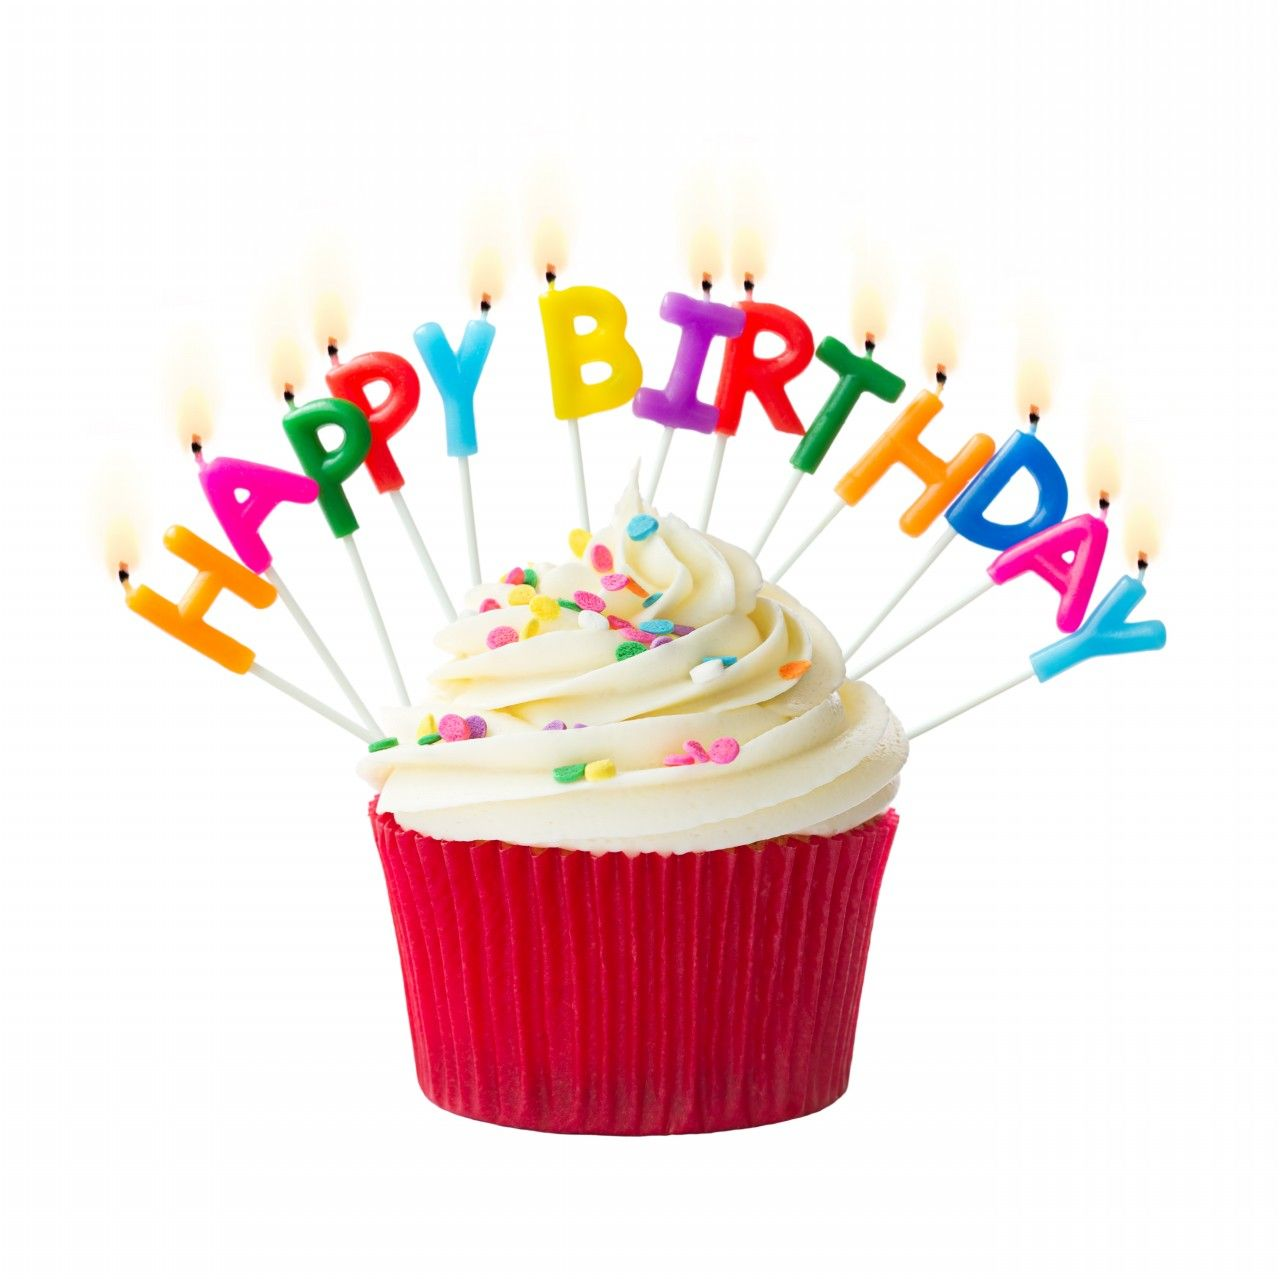 happy birthday – cupcakes with candles, cute images • elsoar